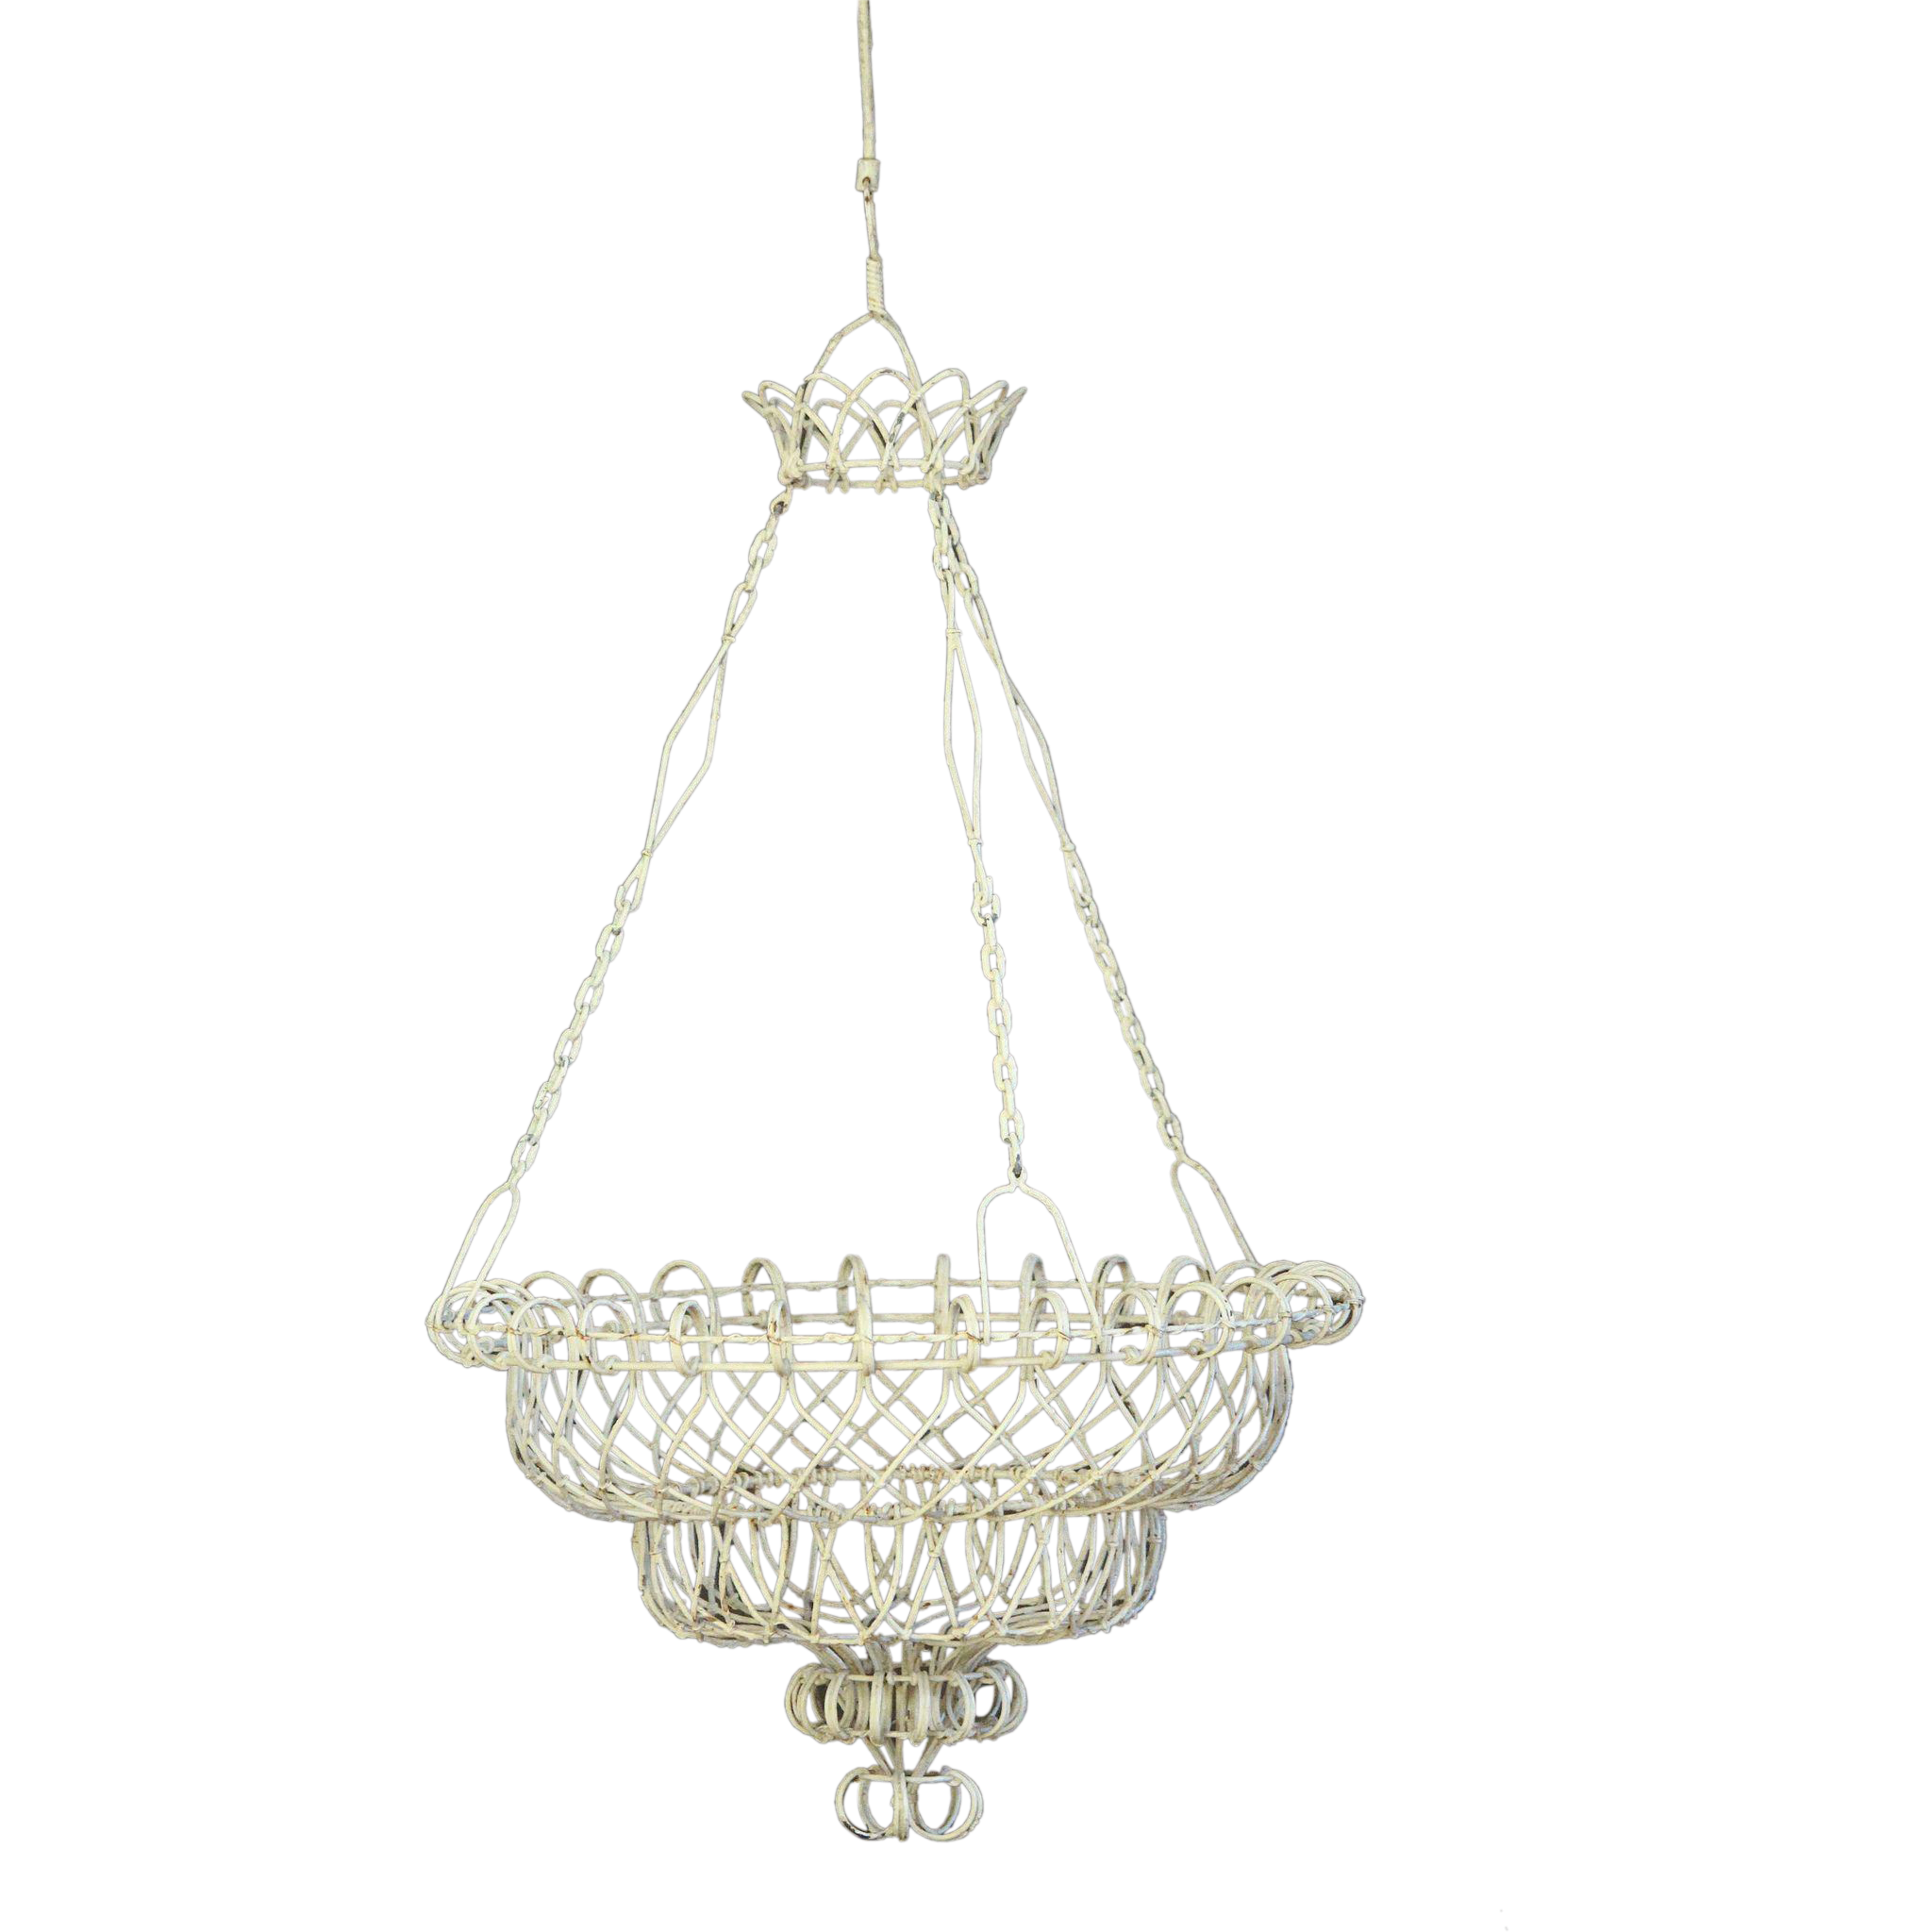 Pictures Of Large Hanging Flower Baskets : Antique french large hanging wire flower basket planter